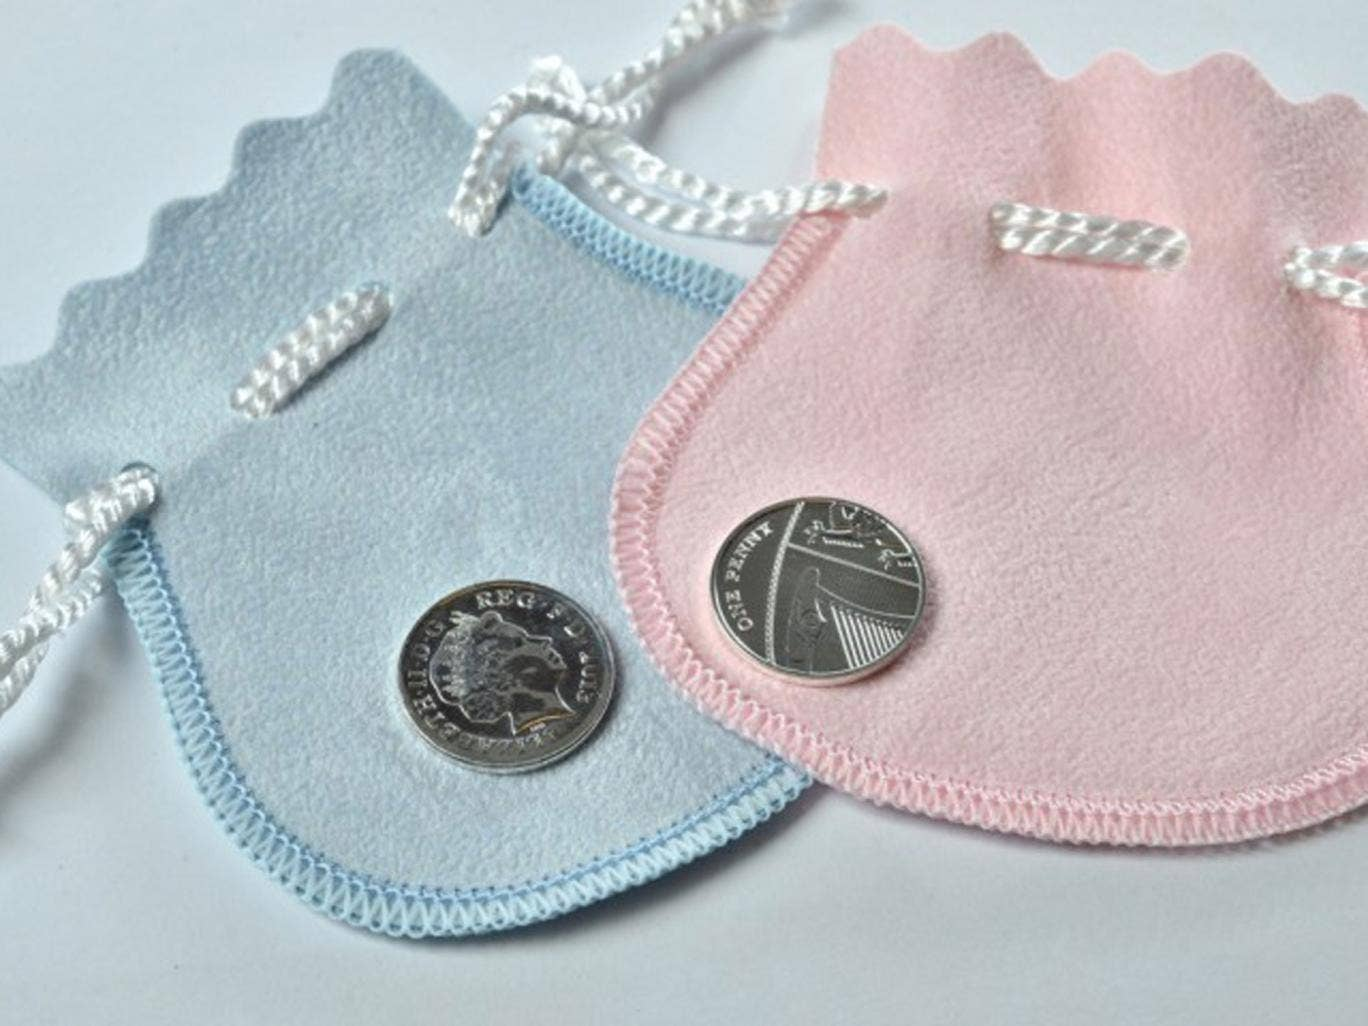 The Royal Mint of a new silver penny coin to commemorate the birth of the Duke and Duchess of Cambridge's baby which will be gifted to babies born on the same day as the future monarch